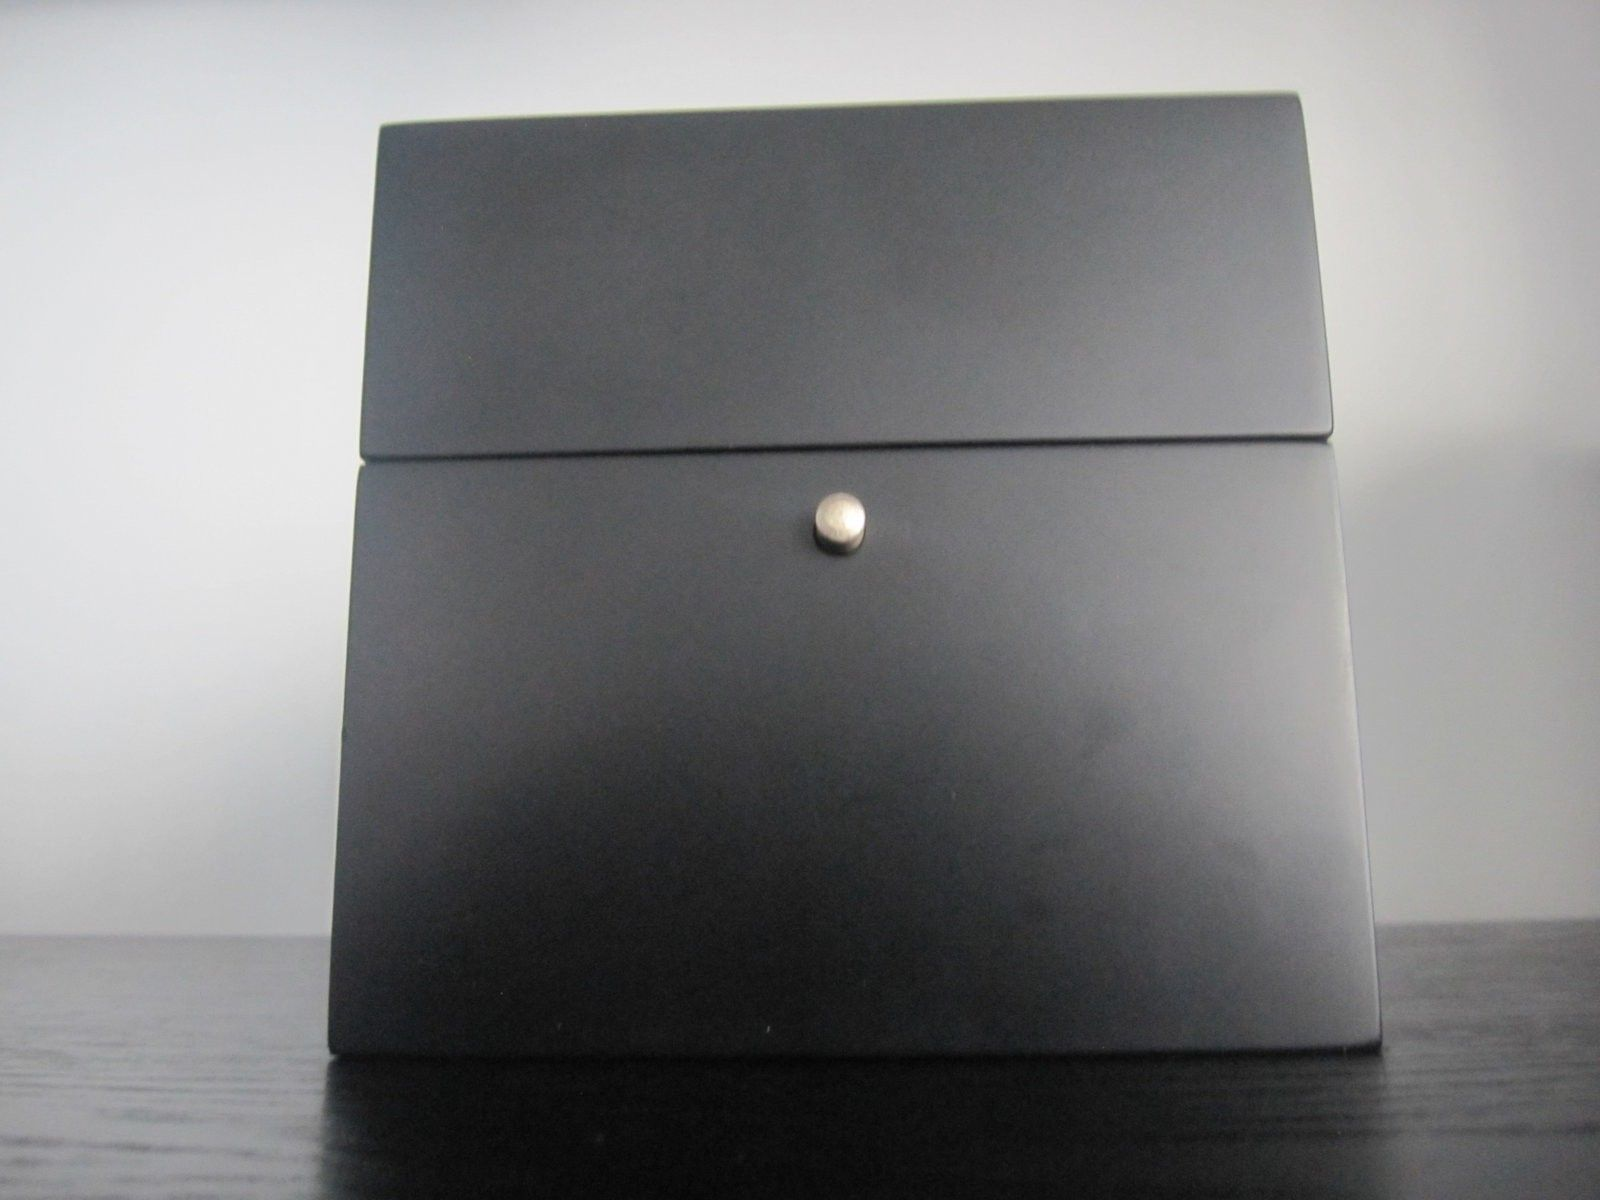 MM deluxe wooden box (with the watch instruments coin on top) - IMG_5477.JPG